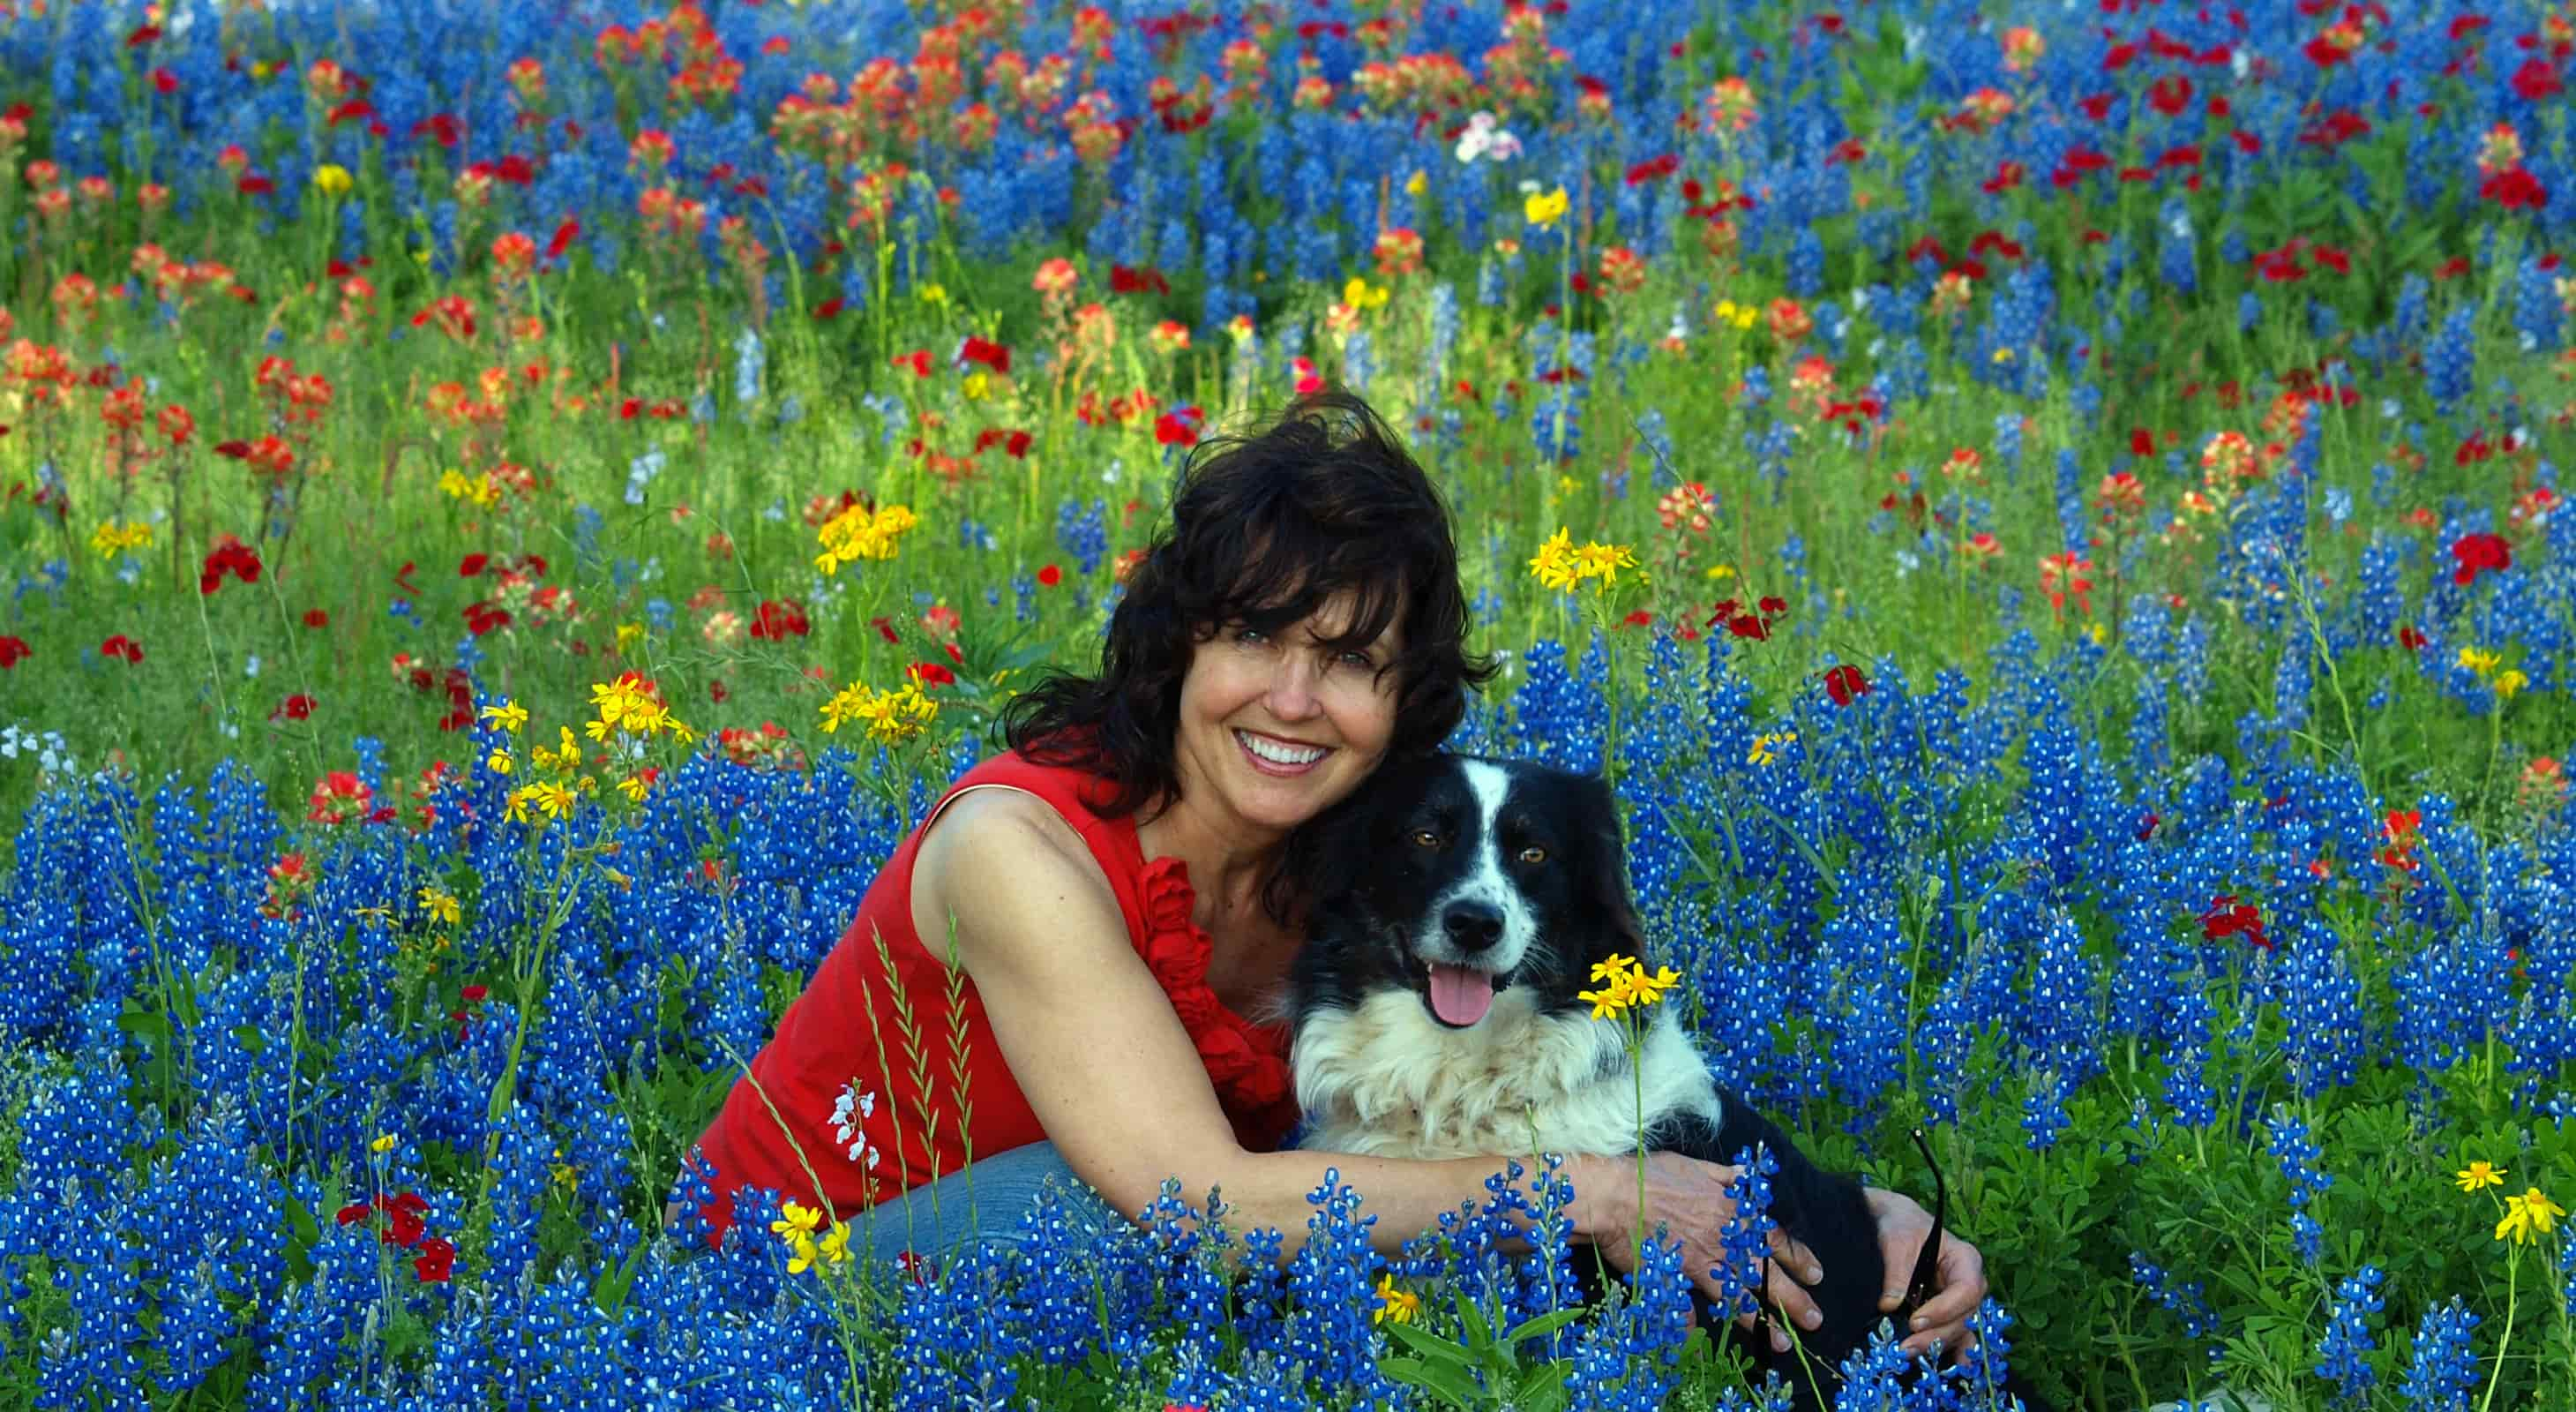 woman with dog in Texas wildflowers